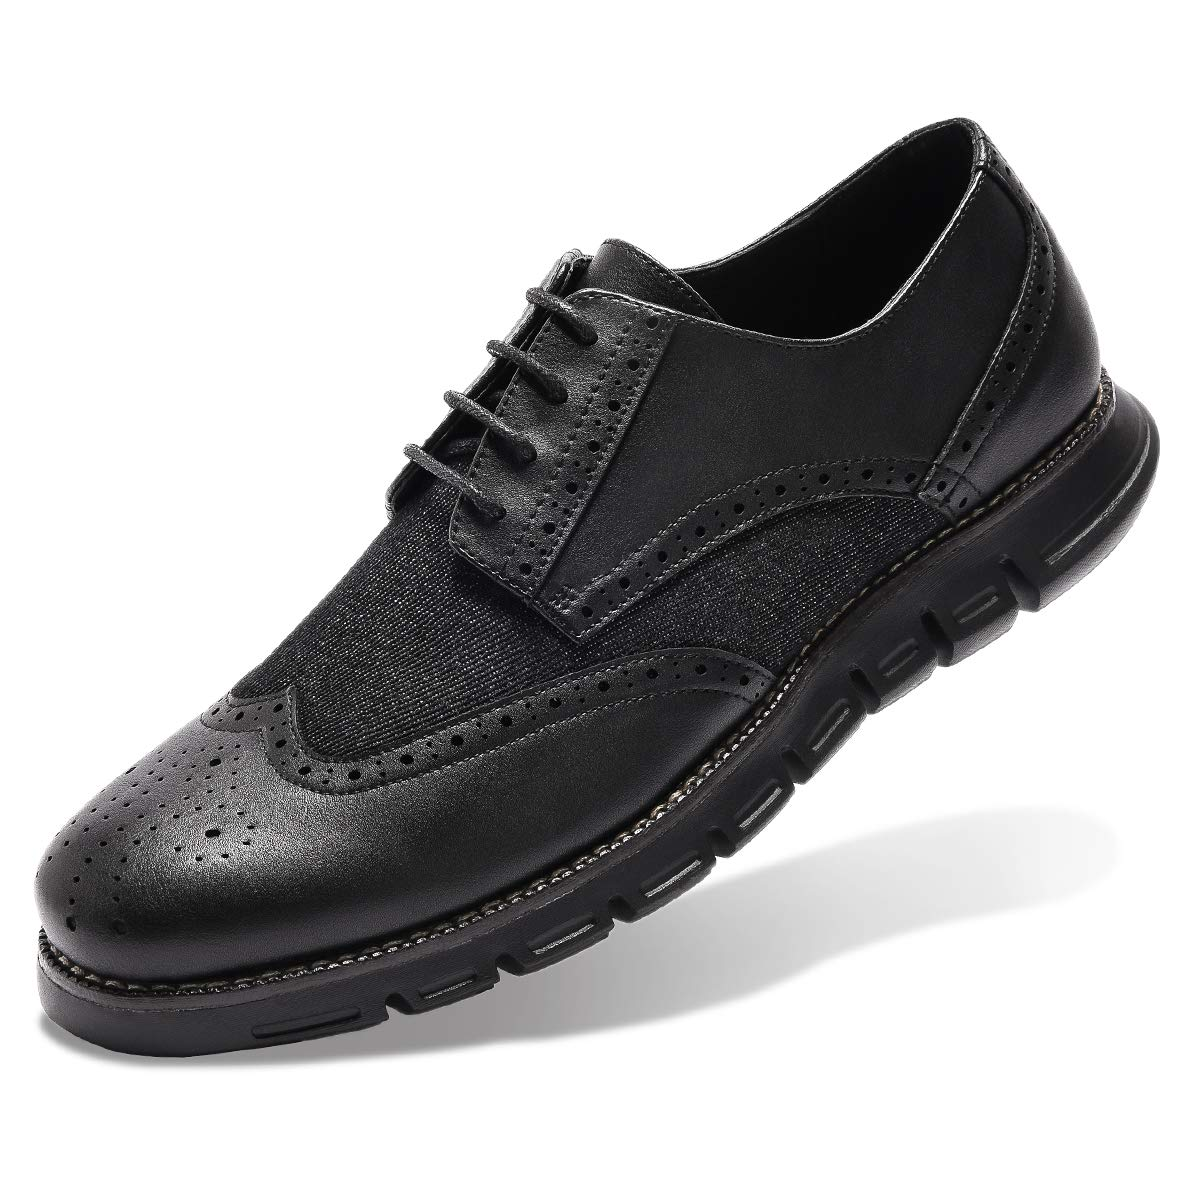 Men's Oxford Sneaker Dress Shoes-Stylish Wingtip Brogue Oxfords Casual Shoes Work Gifts Black 9.5